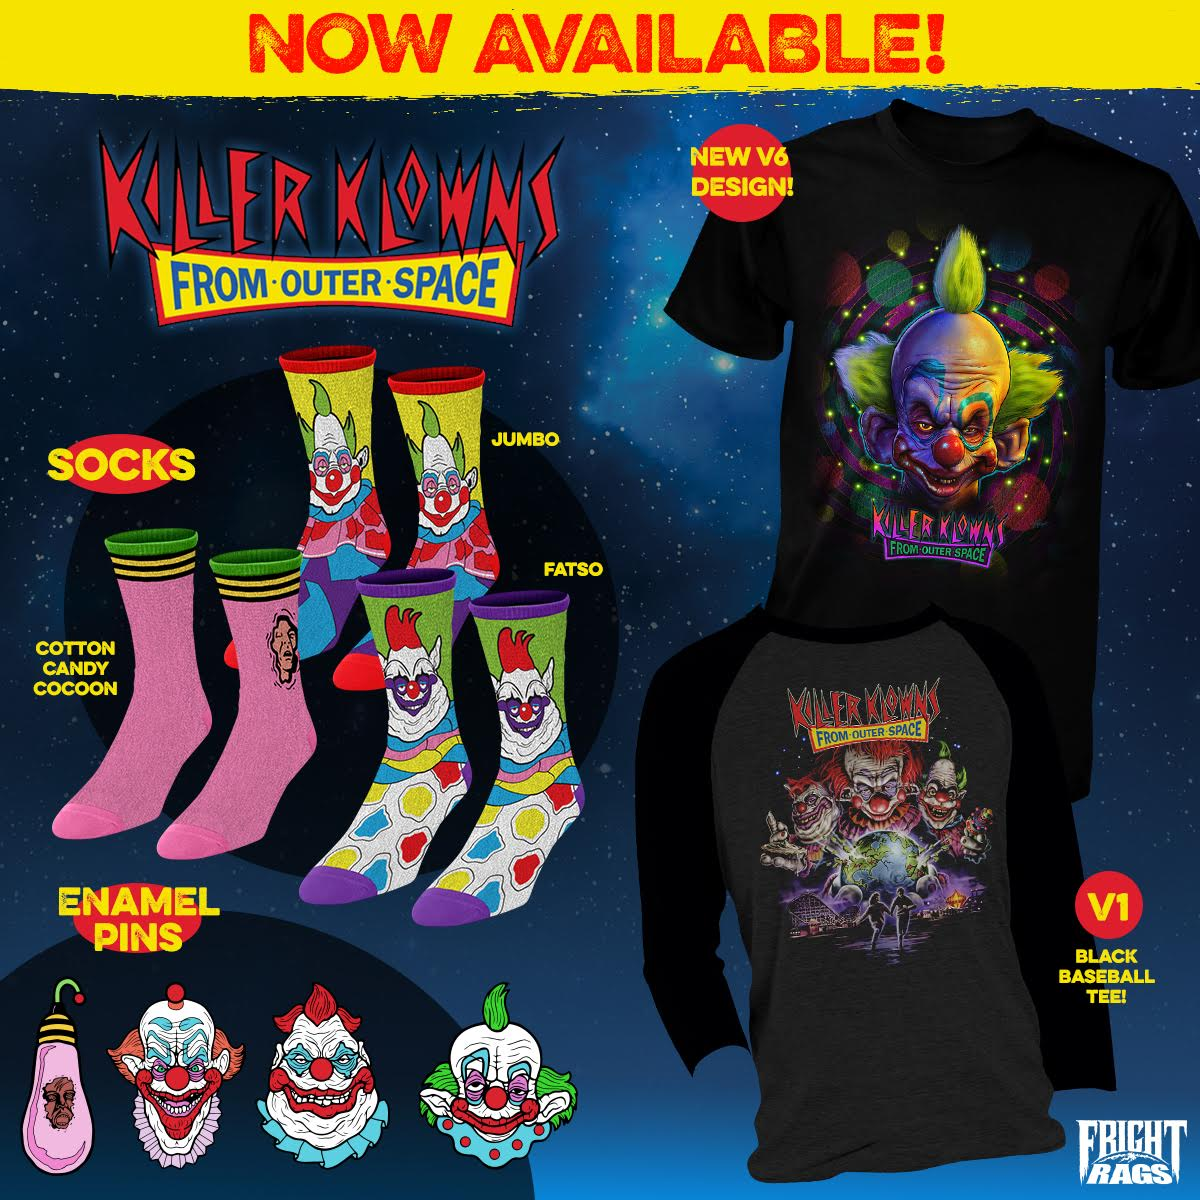 John Carpenter's The Thing & Killer Klowns from Outer Space collections from Fright-Rags